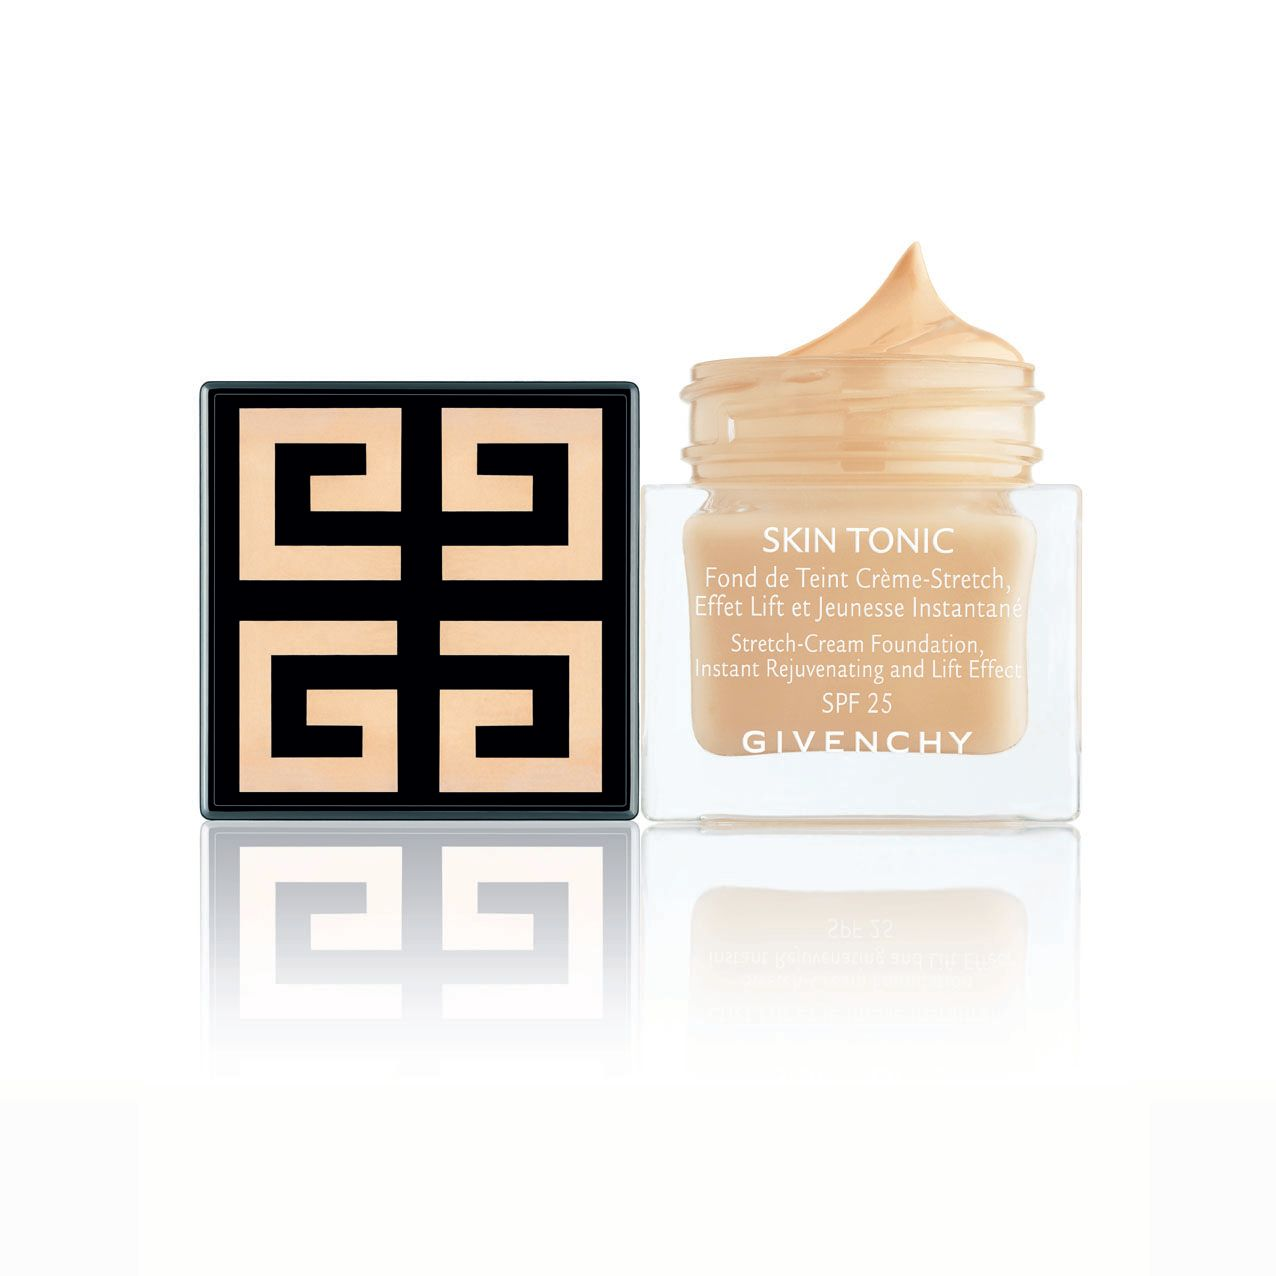 Givenchy Health And Beauty Reviews